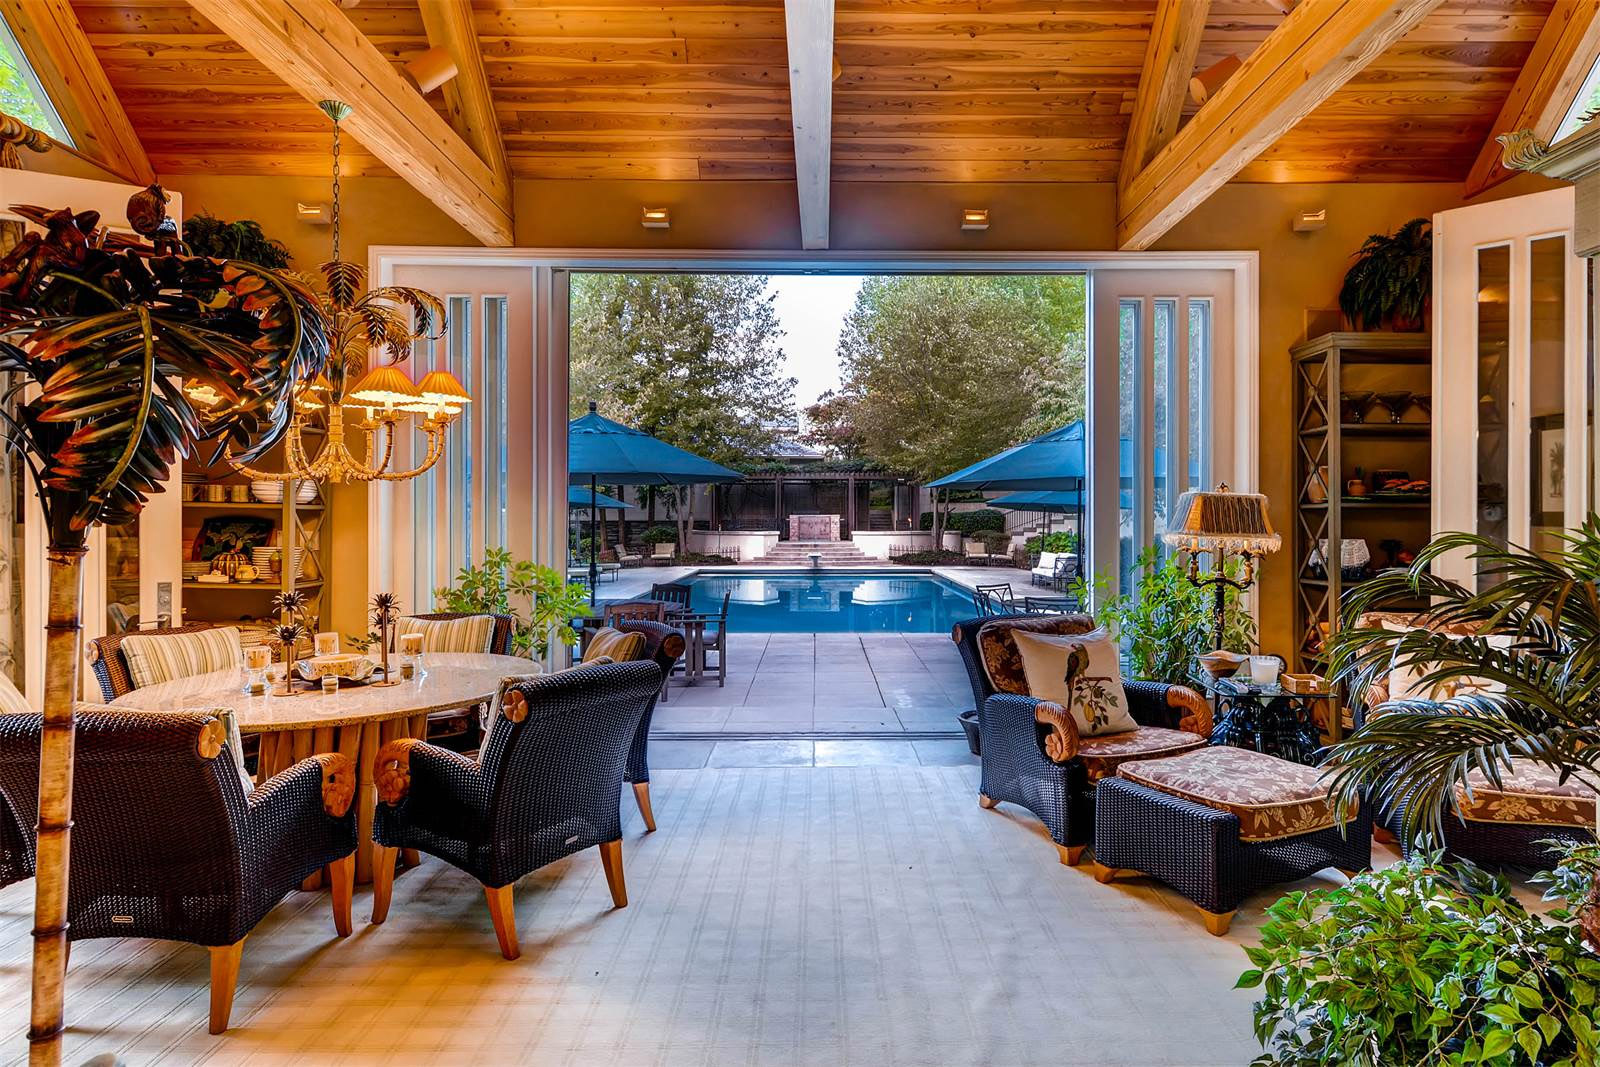 The 25-acre secluded estate comes with a pool, cabana, game room, indoor basketball court and batting cage. (Courtesy Monument Sotheby's International Realty)